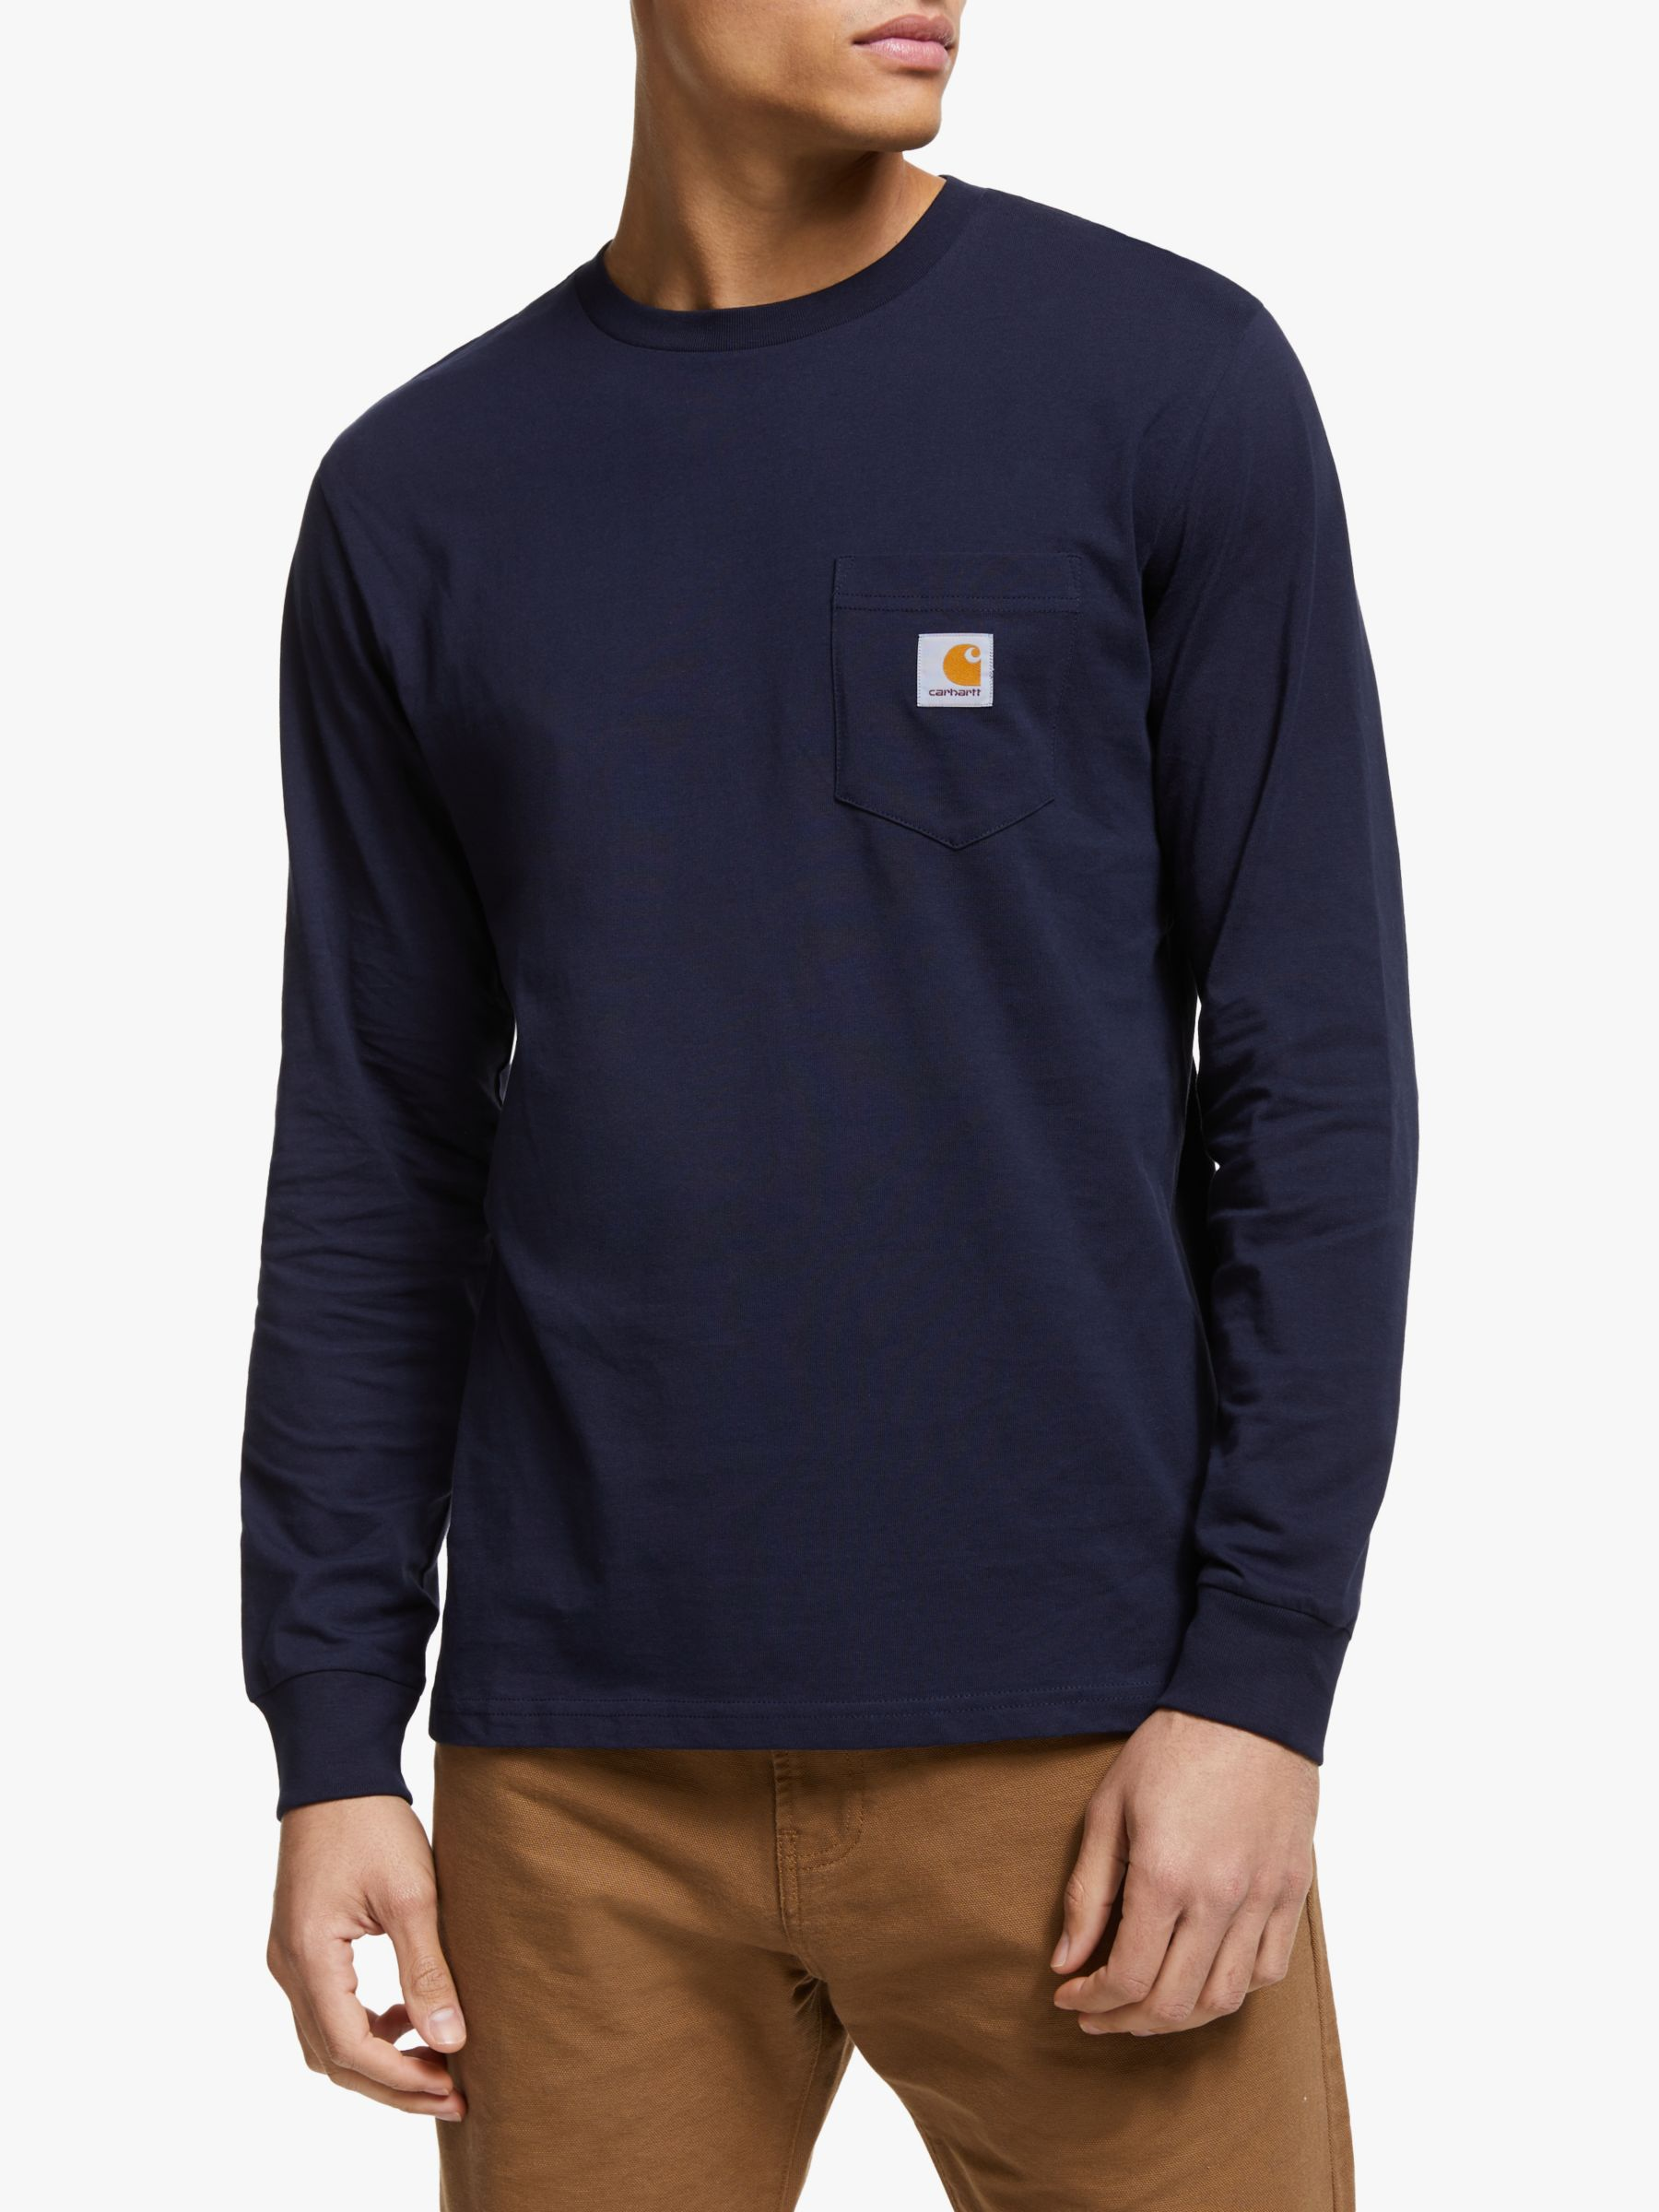 Carhartt WIP Carhartt WIP Long Sleeve Chest Pocket Top